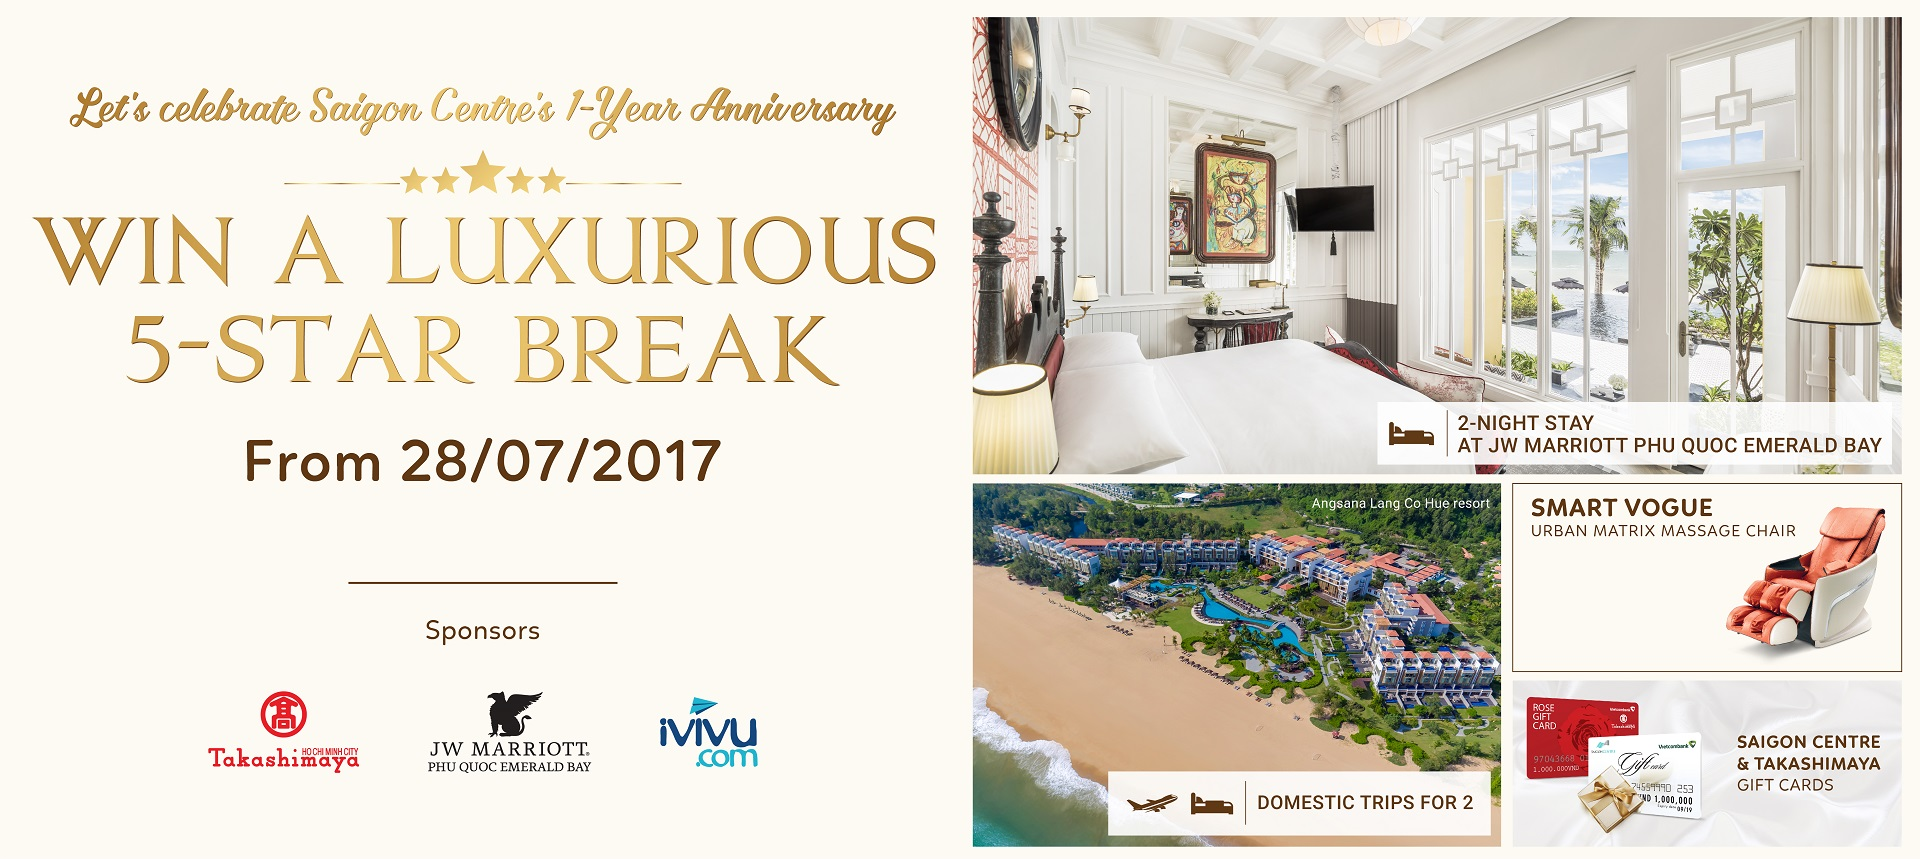 Win a luxurious 5-star break